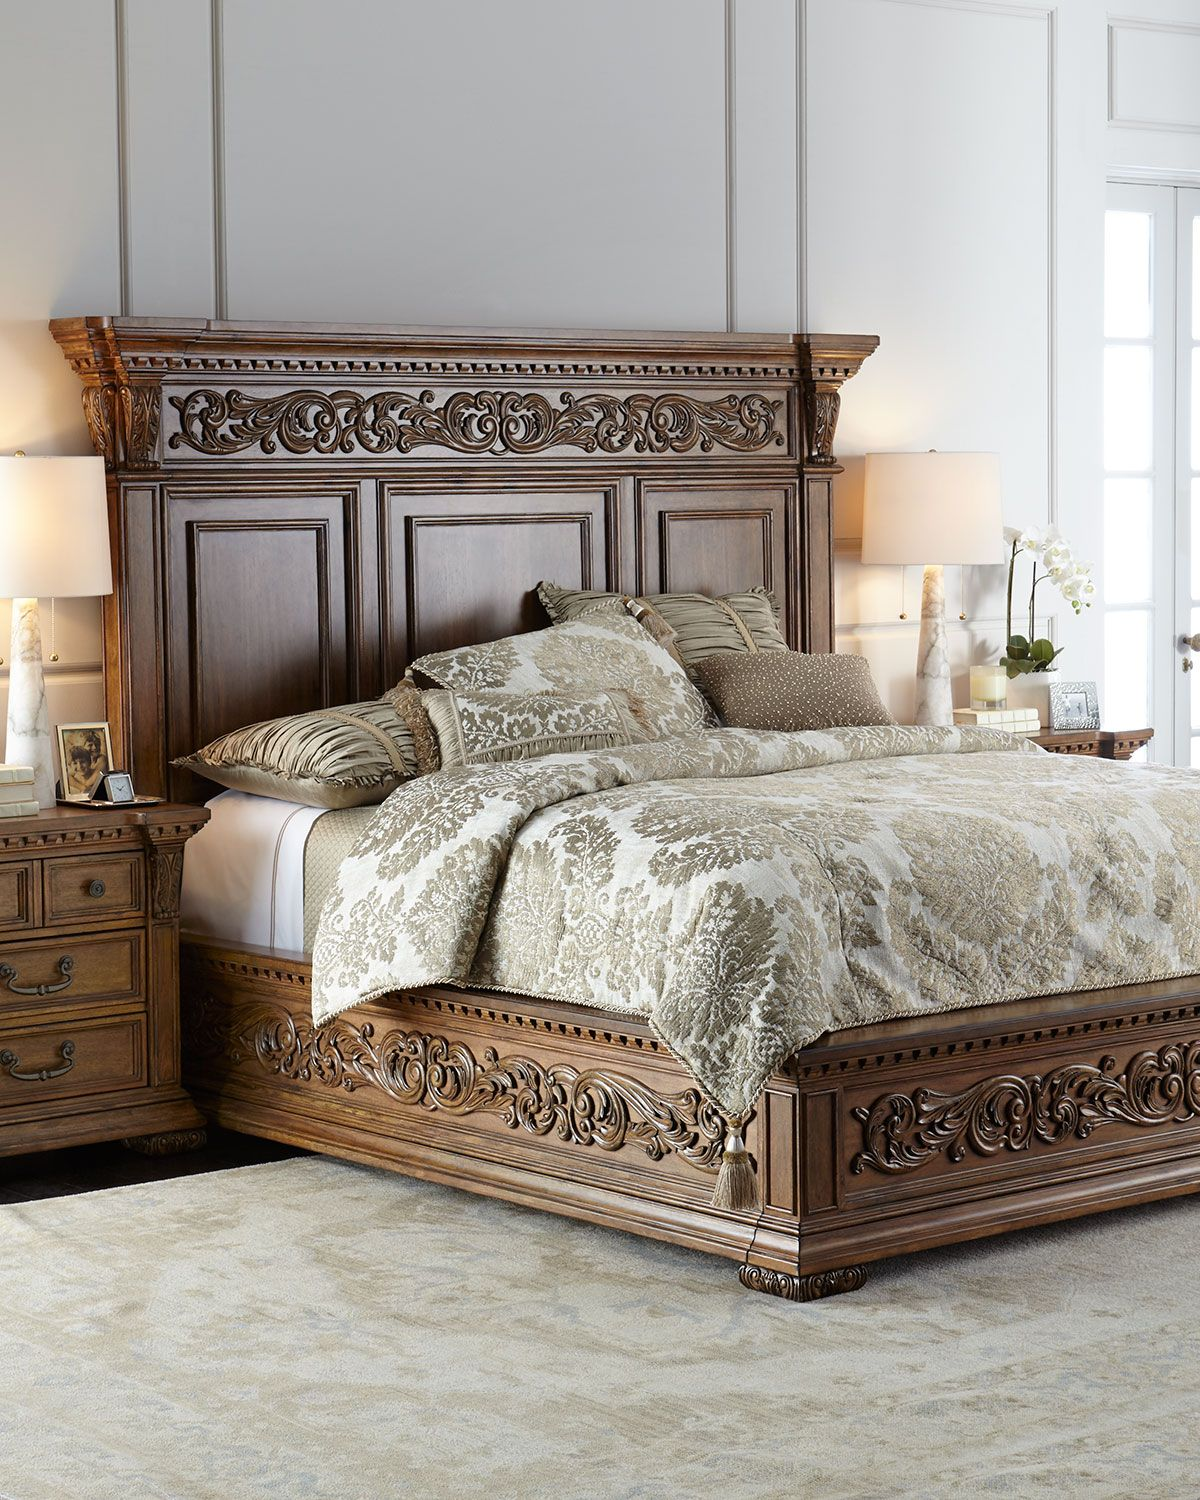 Wembley California King Bed Traditional Bedroom Furniture Wood Bedroom Furniture Bedroom Furniture Beds